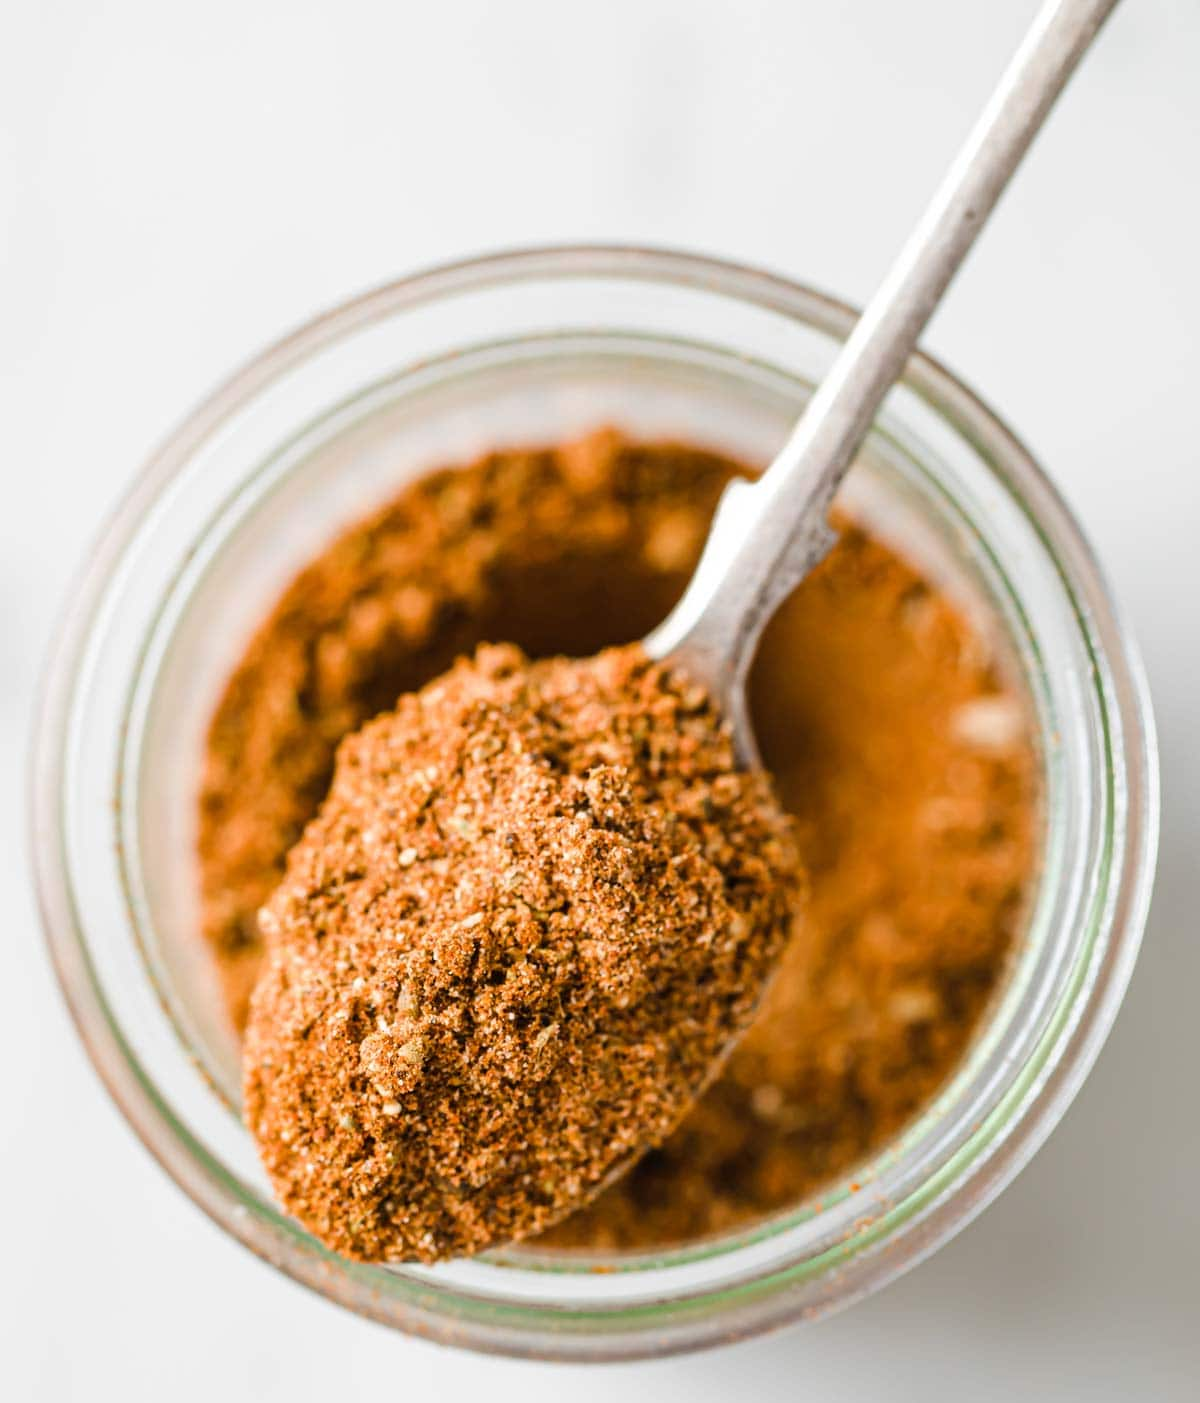 a spoon with homemade taco seasoning lying on top of a glass jar with seasoning